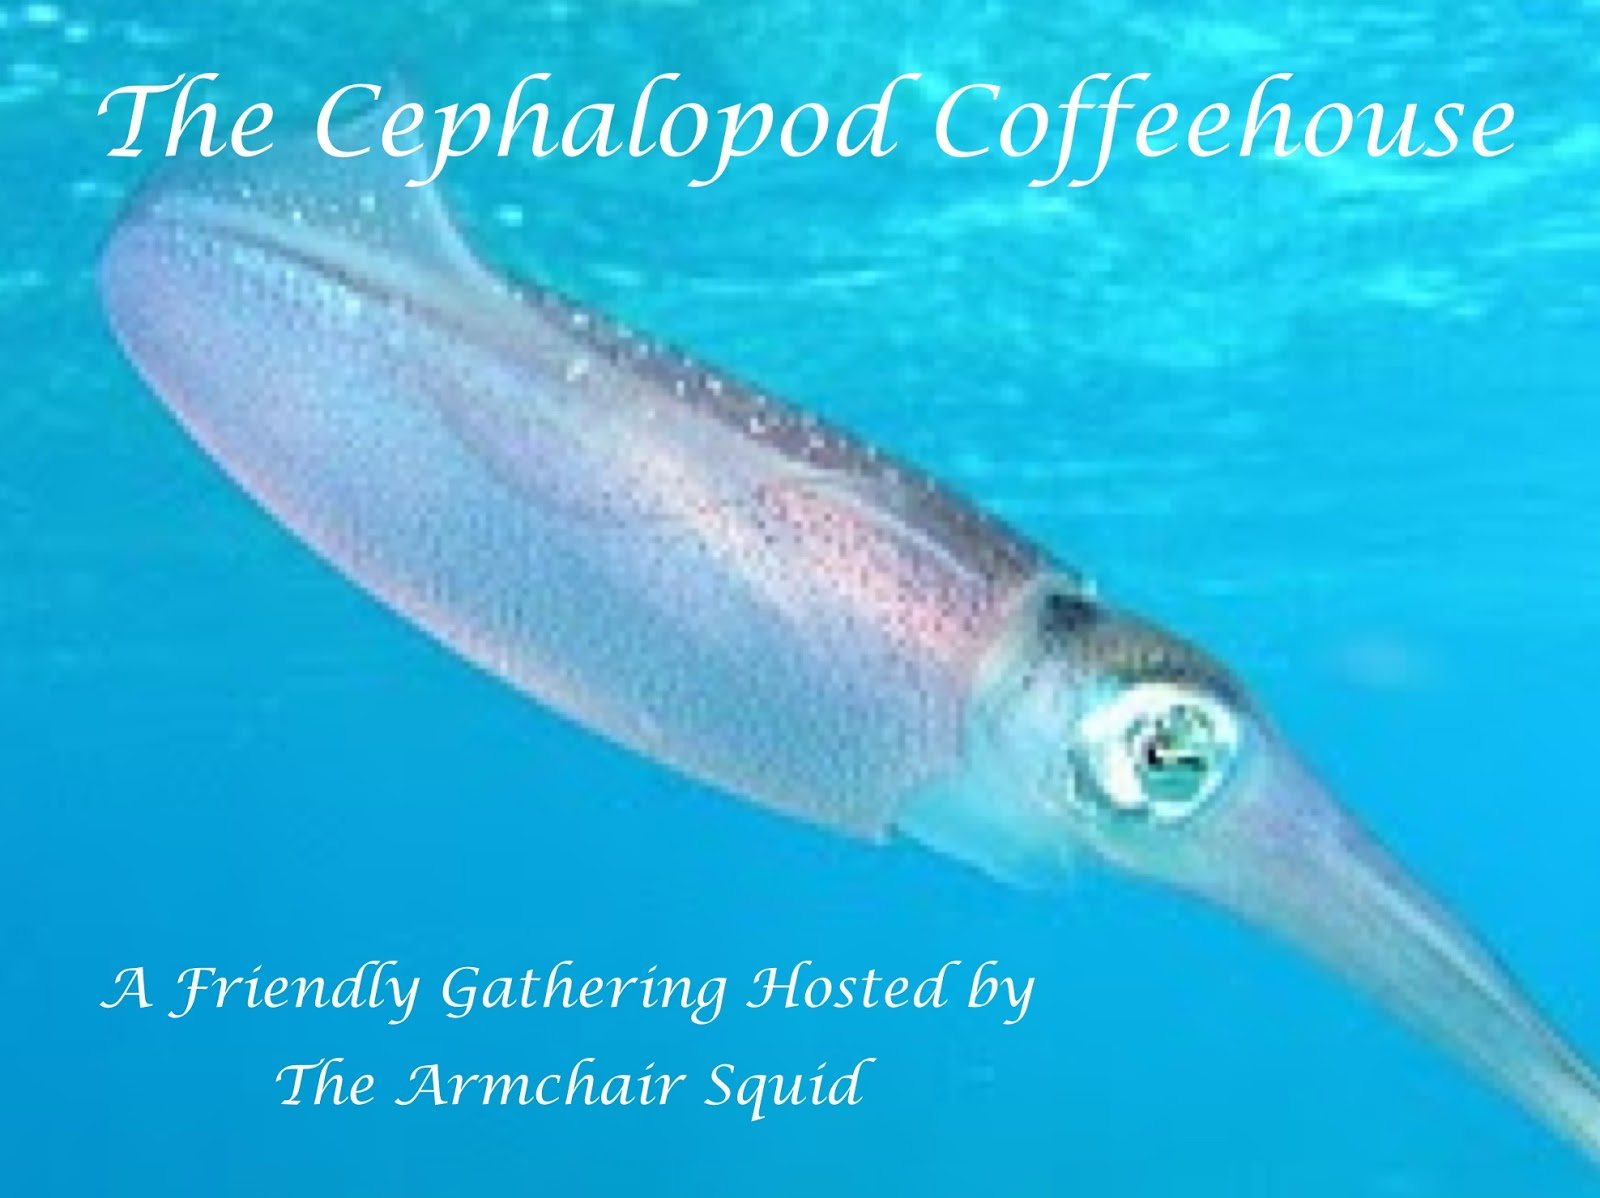 http://armchairsquid.blogspot.com/2014/04/the-cephalopod-coffeehouse-may-2014.html